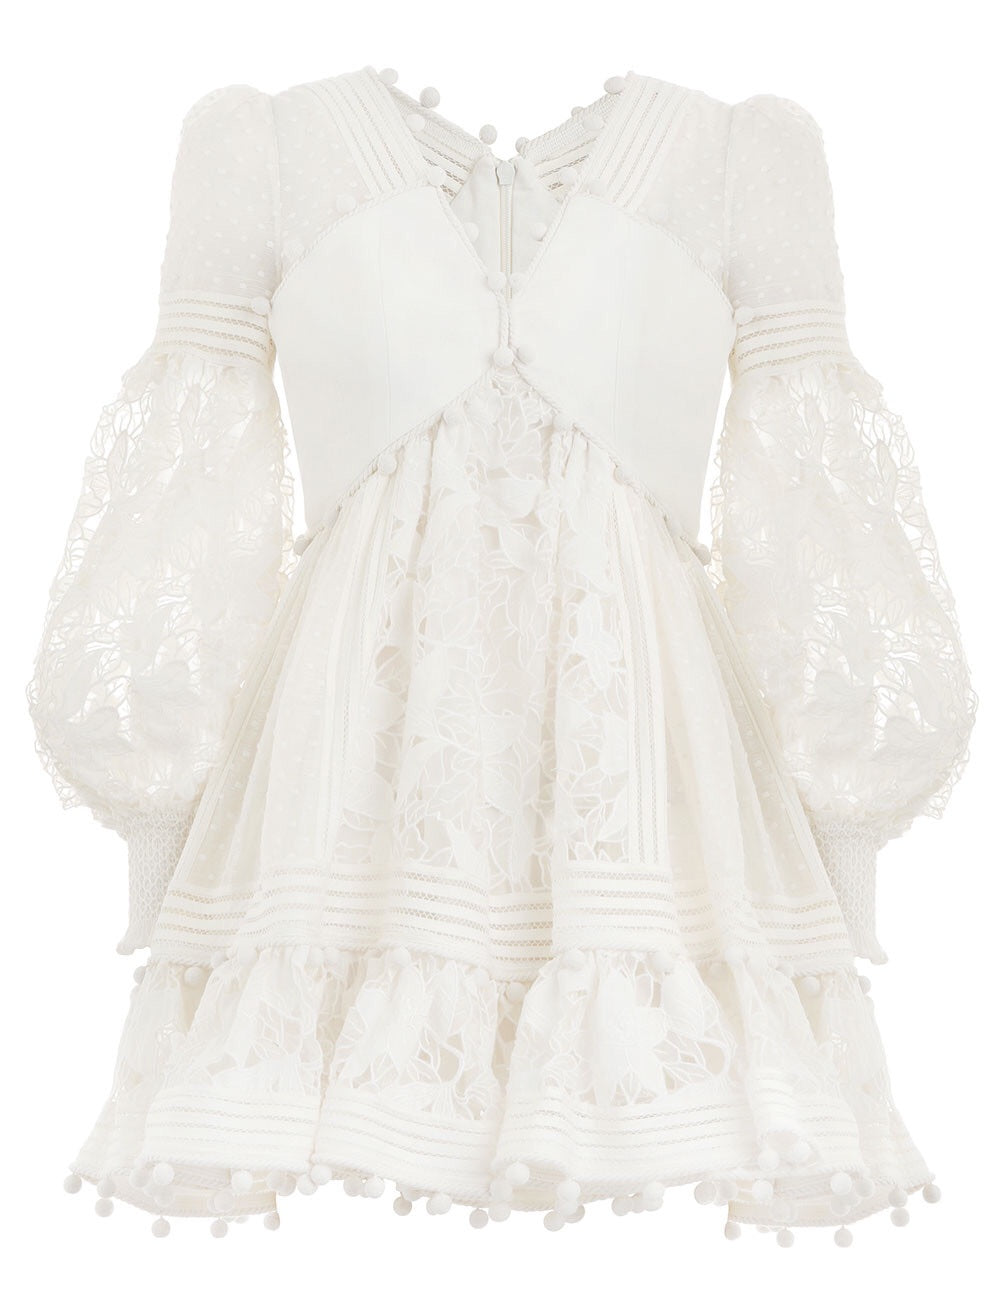 700467082c68 ... Load image into Gallery viewer, ZIMMERMANN Corsage Embellished Mini  Dress ...